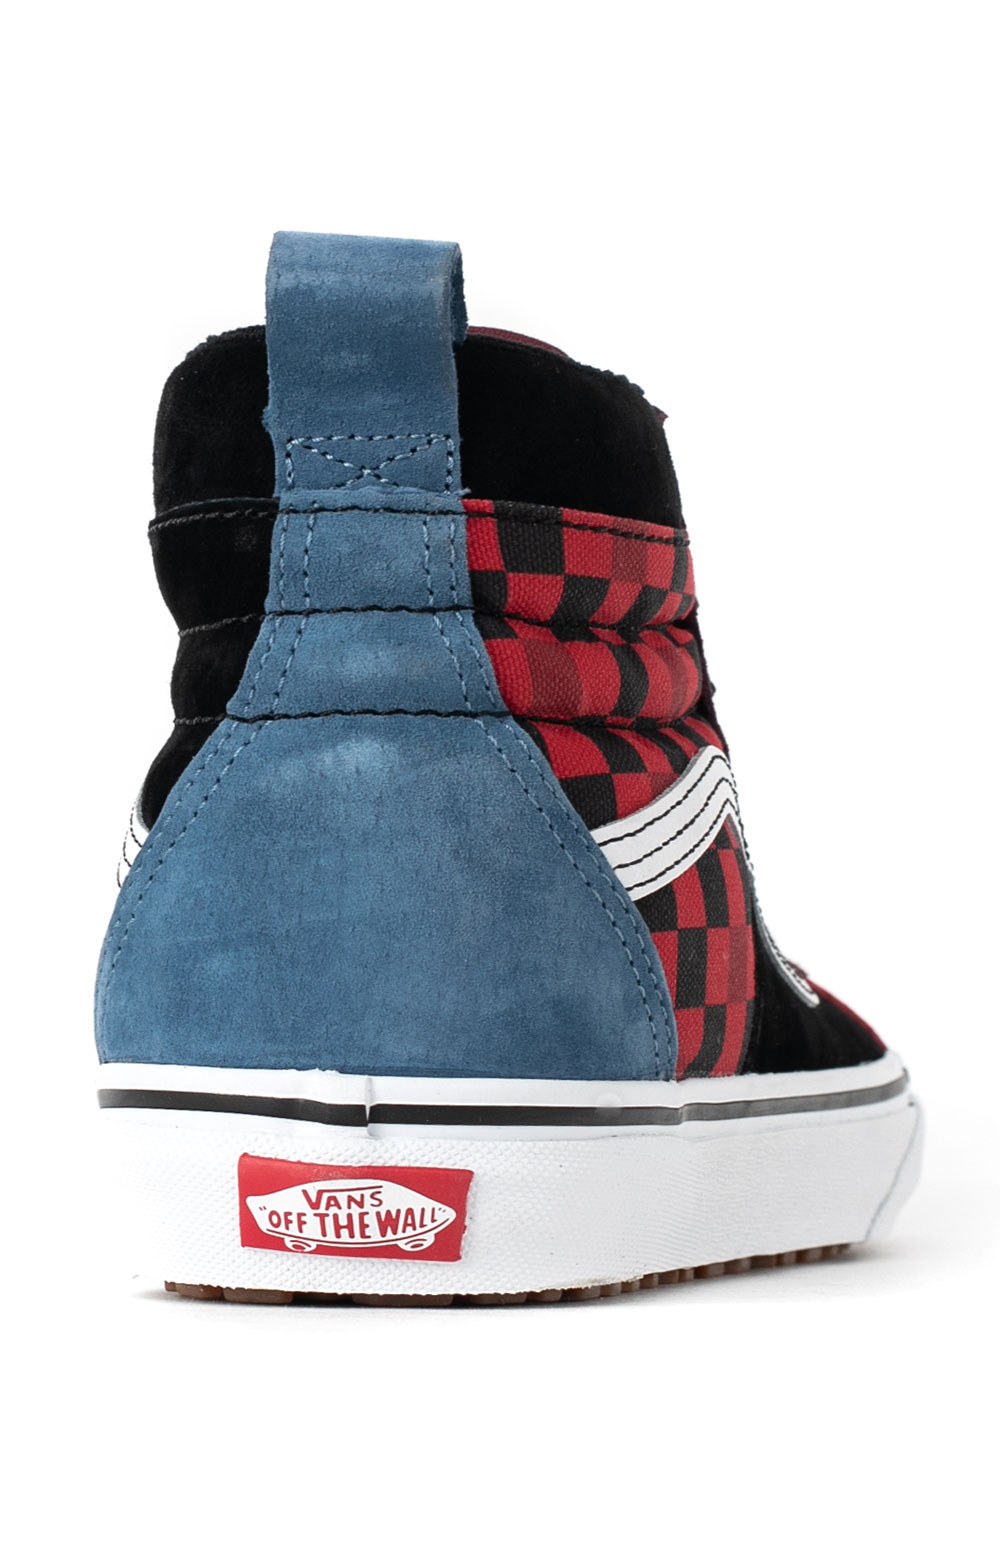 (DQ523A) Sk8-Hi 48 MTE DX Shoes - Multi/Red 5